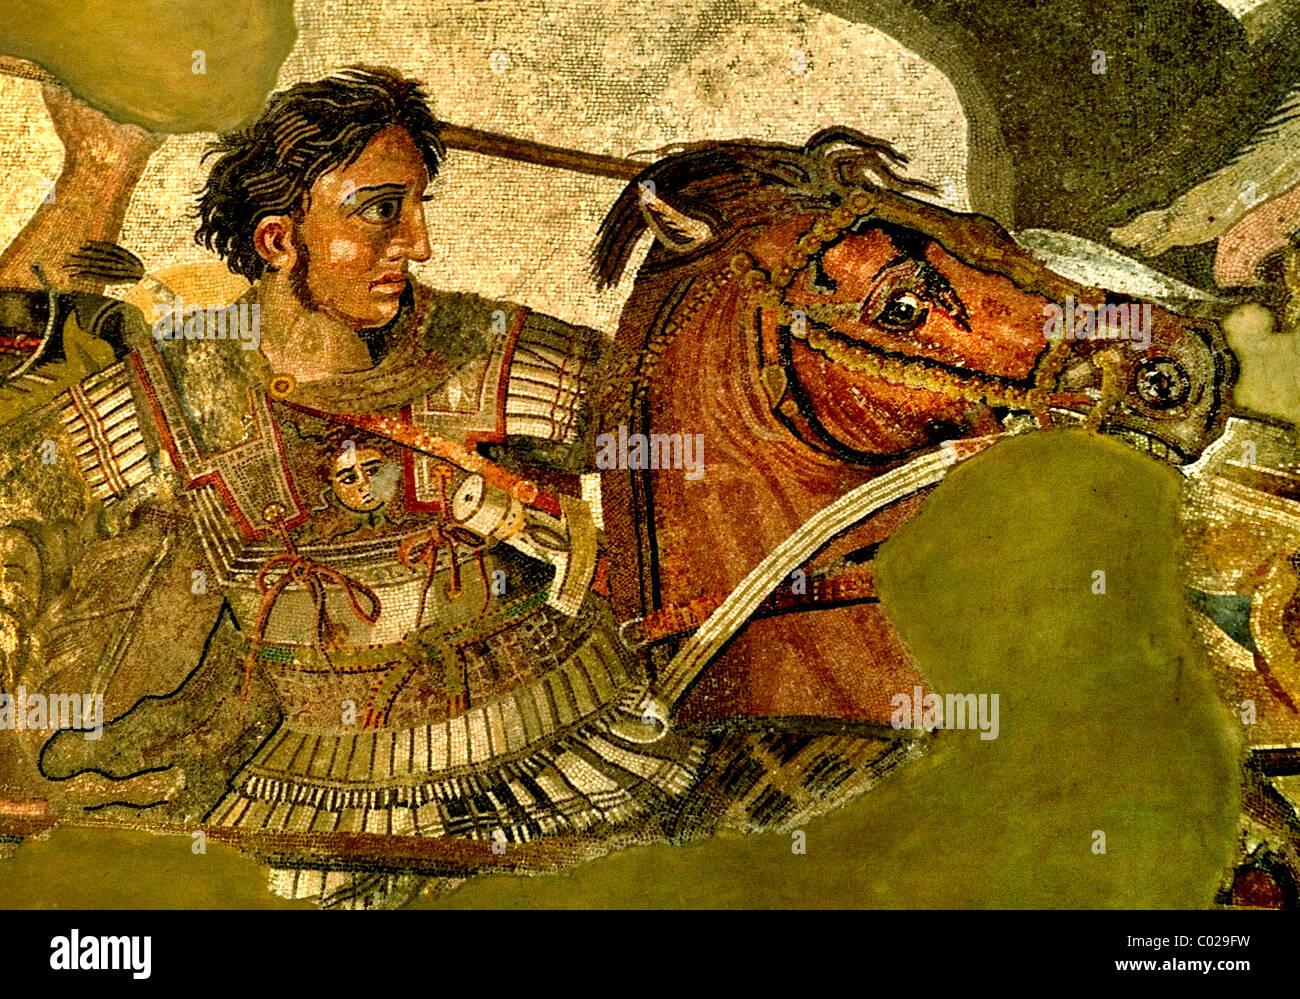 alexander the great and the battle Alexander the great  after defeating the persians at the battle of issus, alexander decided to enter egypt, which had been under persian rule for almost 200 years the egyptians despised.